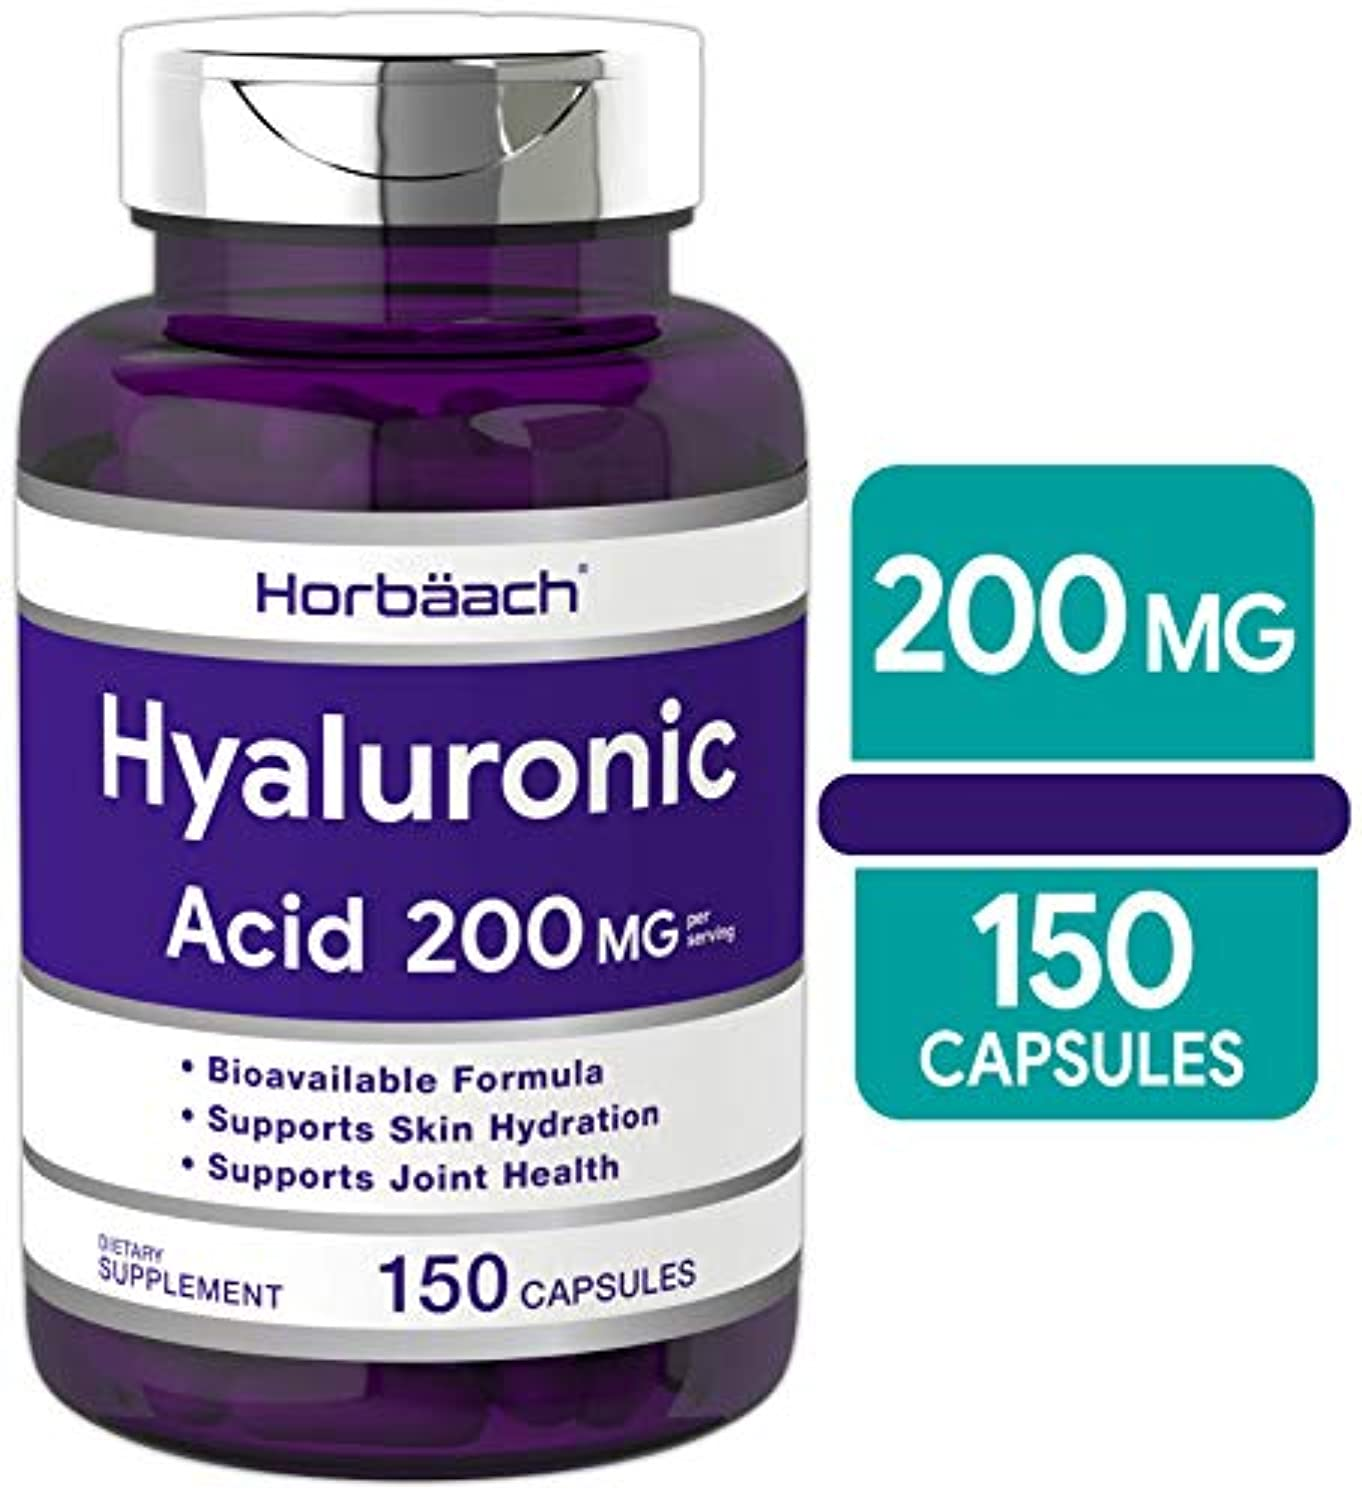 Classier: Buy Horbäach Hyaluronic Acid Capsules 200 mg 150 Count | Supports Joint and Skin Hydration | Non-GMO & Gluten Free Supplement | by Horbaach